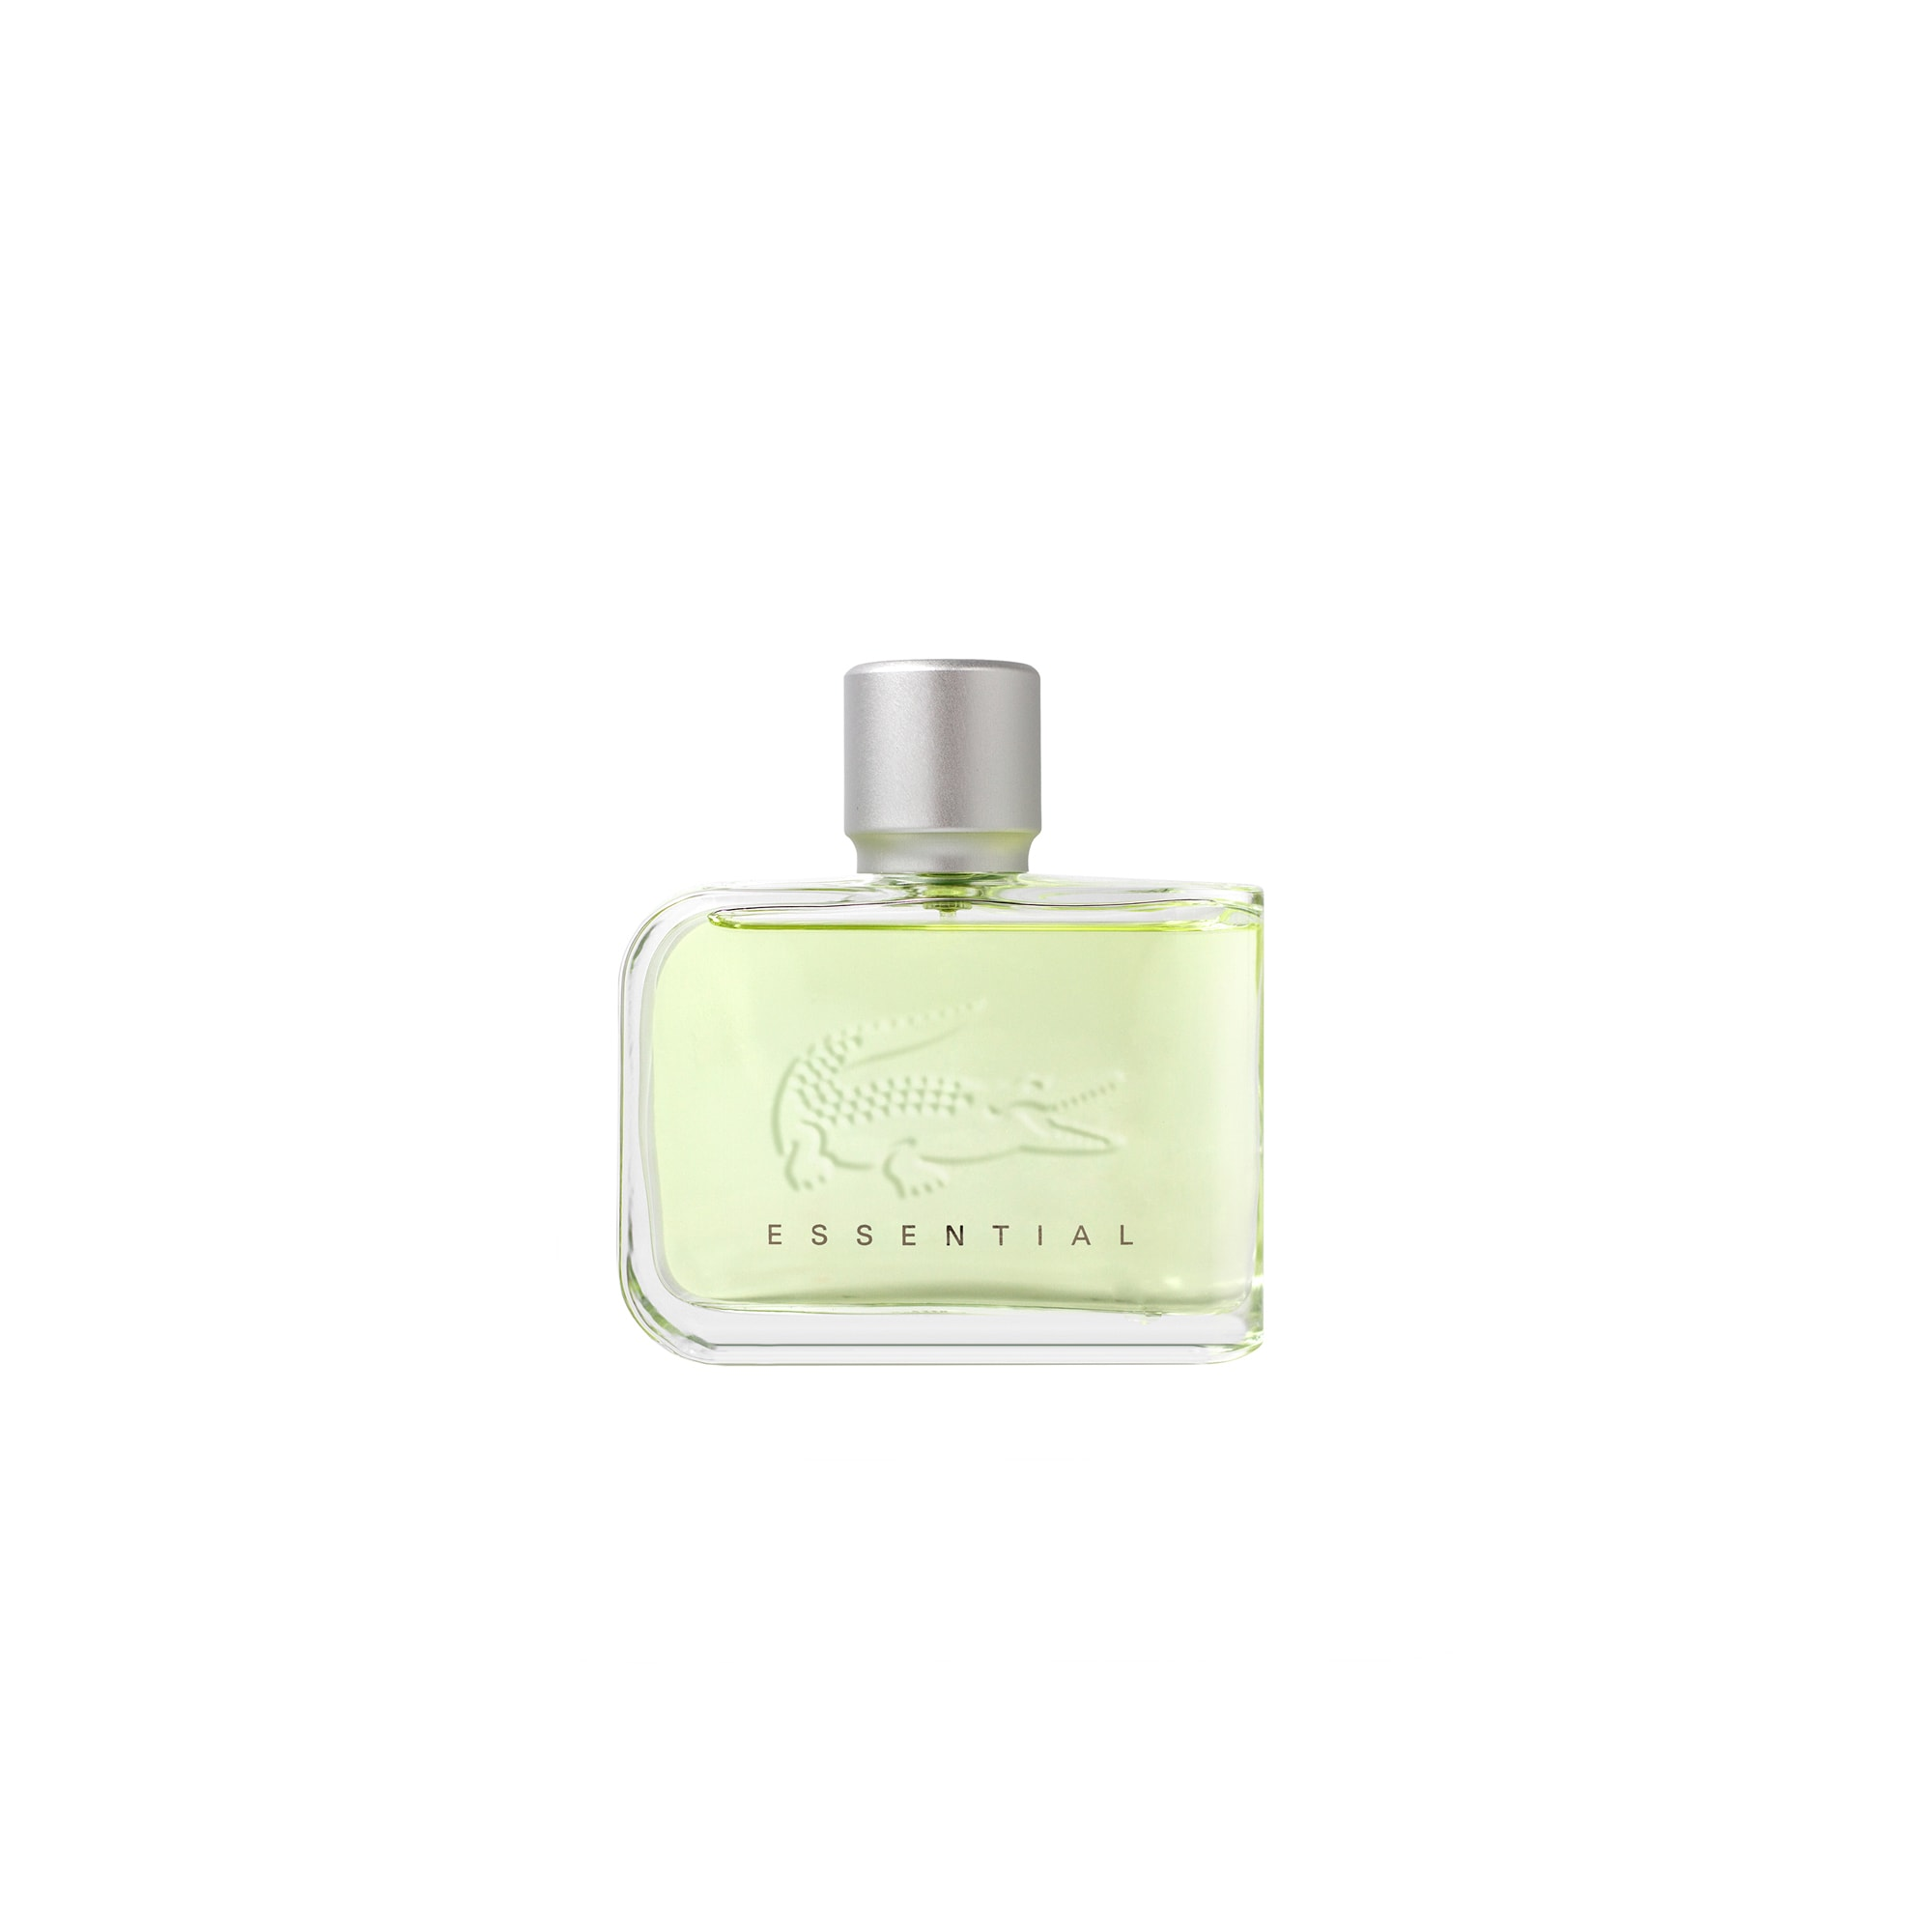 Lacoste Essential Eau de Toilette 125 ml